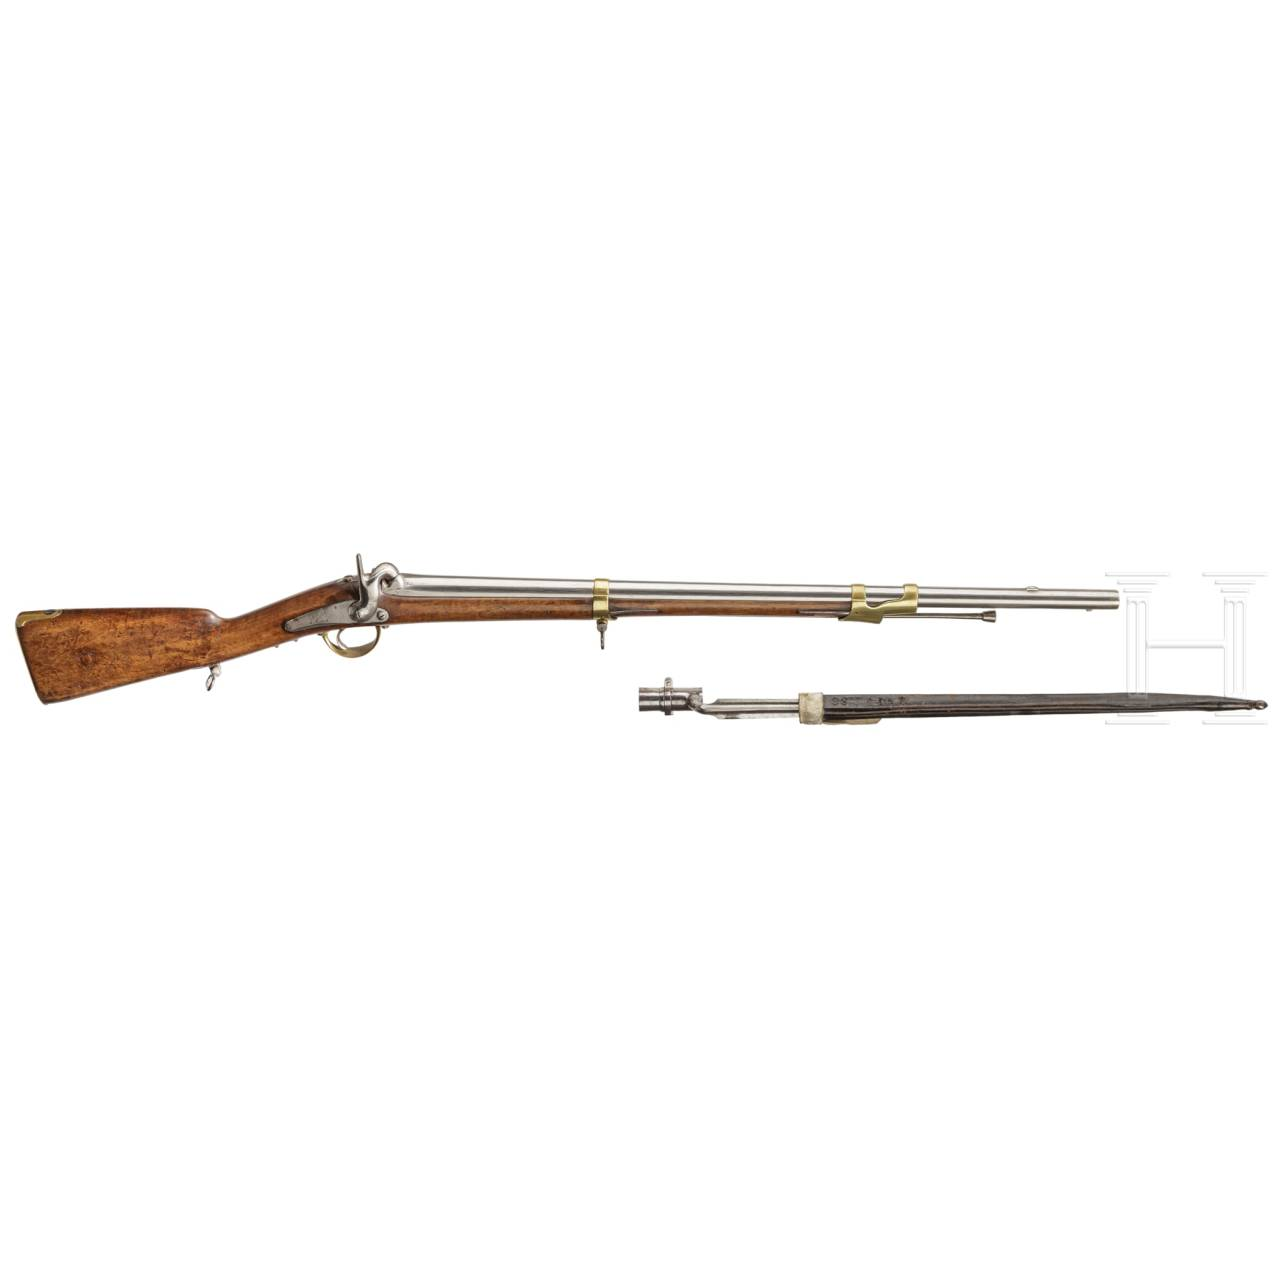 A French gendarm's musketoon M 1842, with bayonet